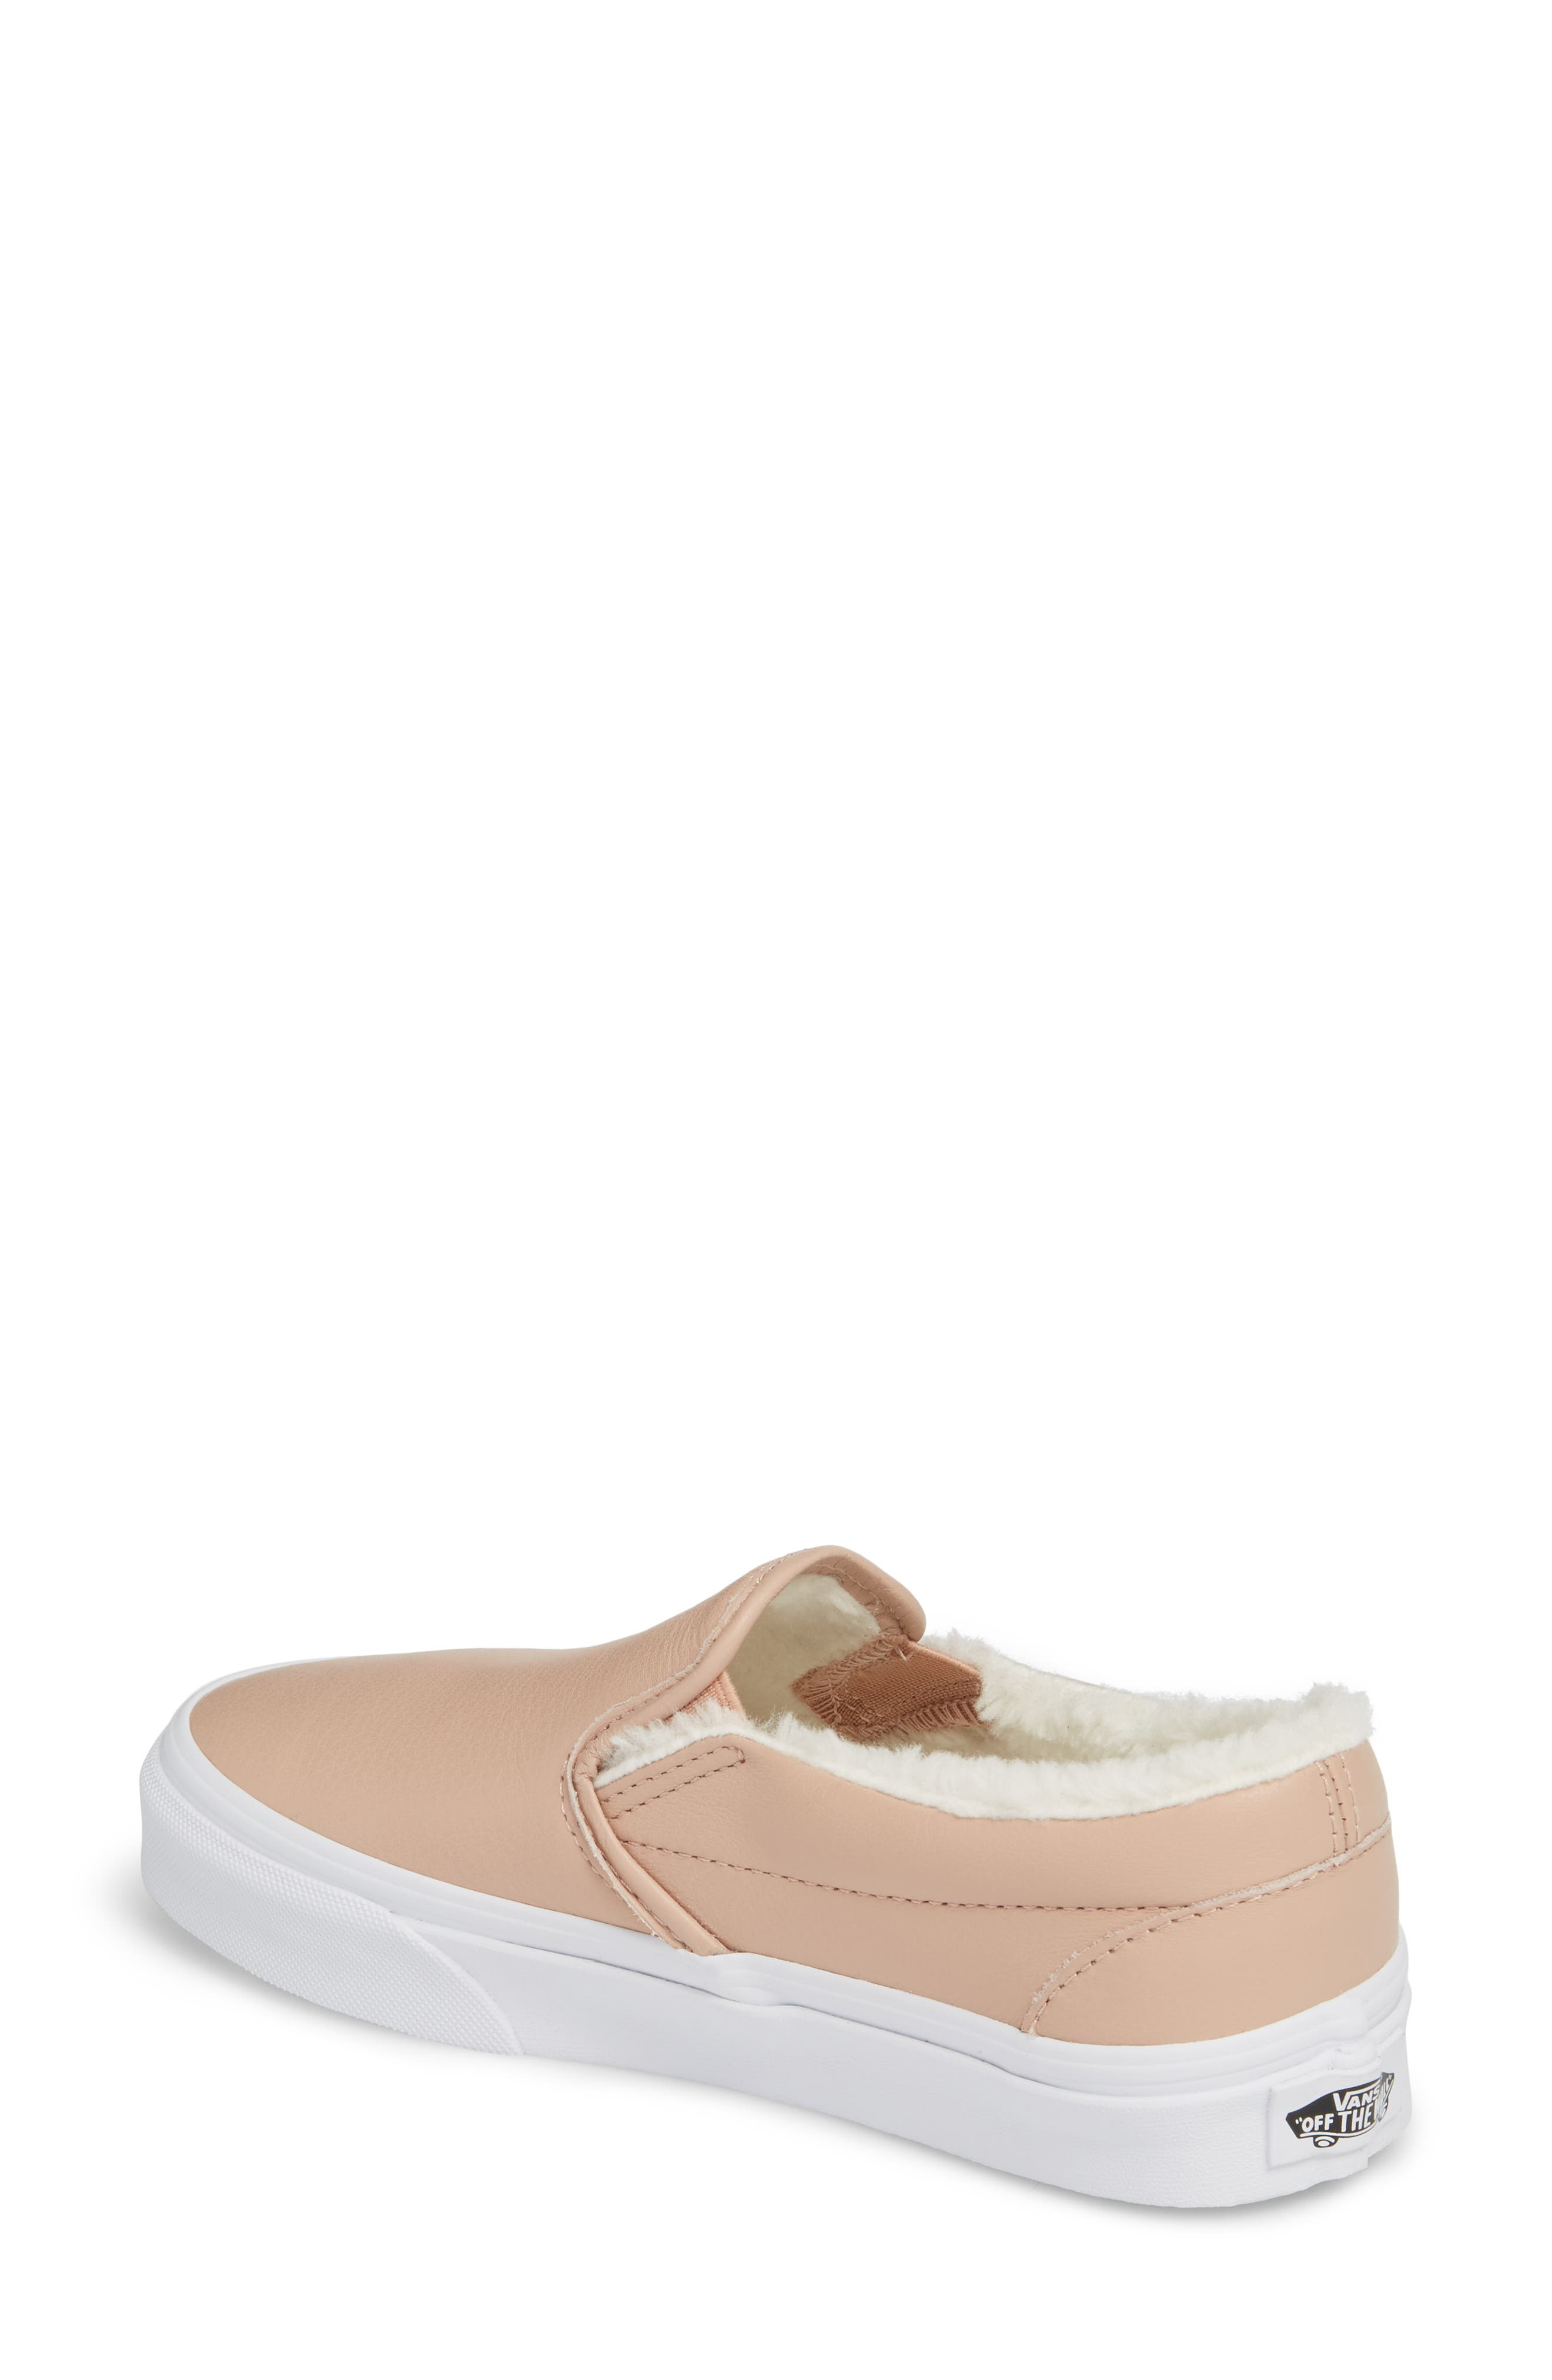 Classic Slip-On Sneaker,                             Alternate thumbnail 123, color,